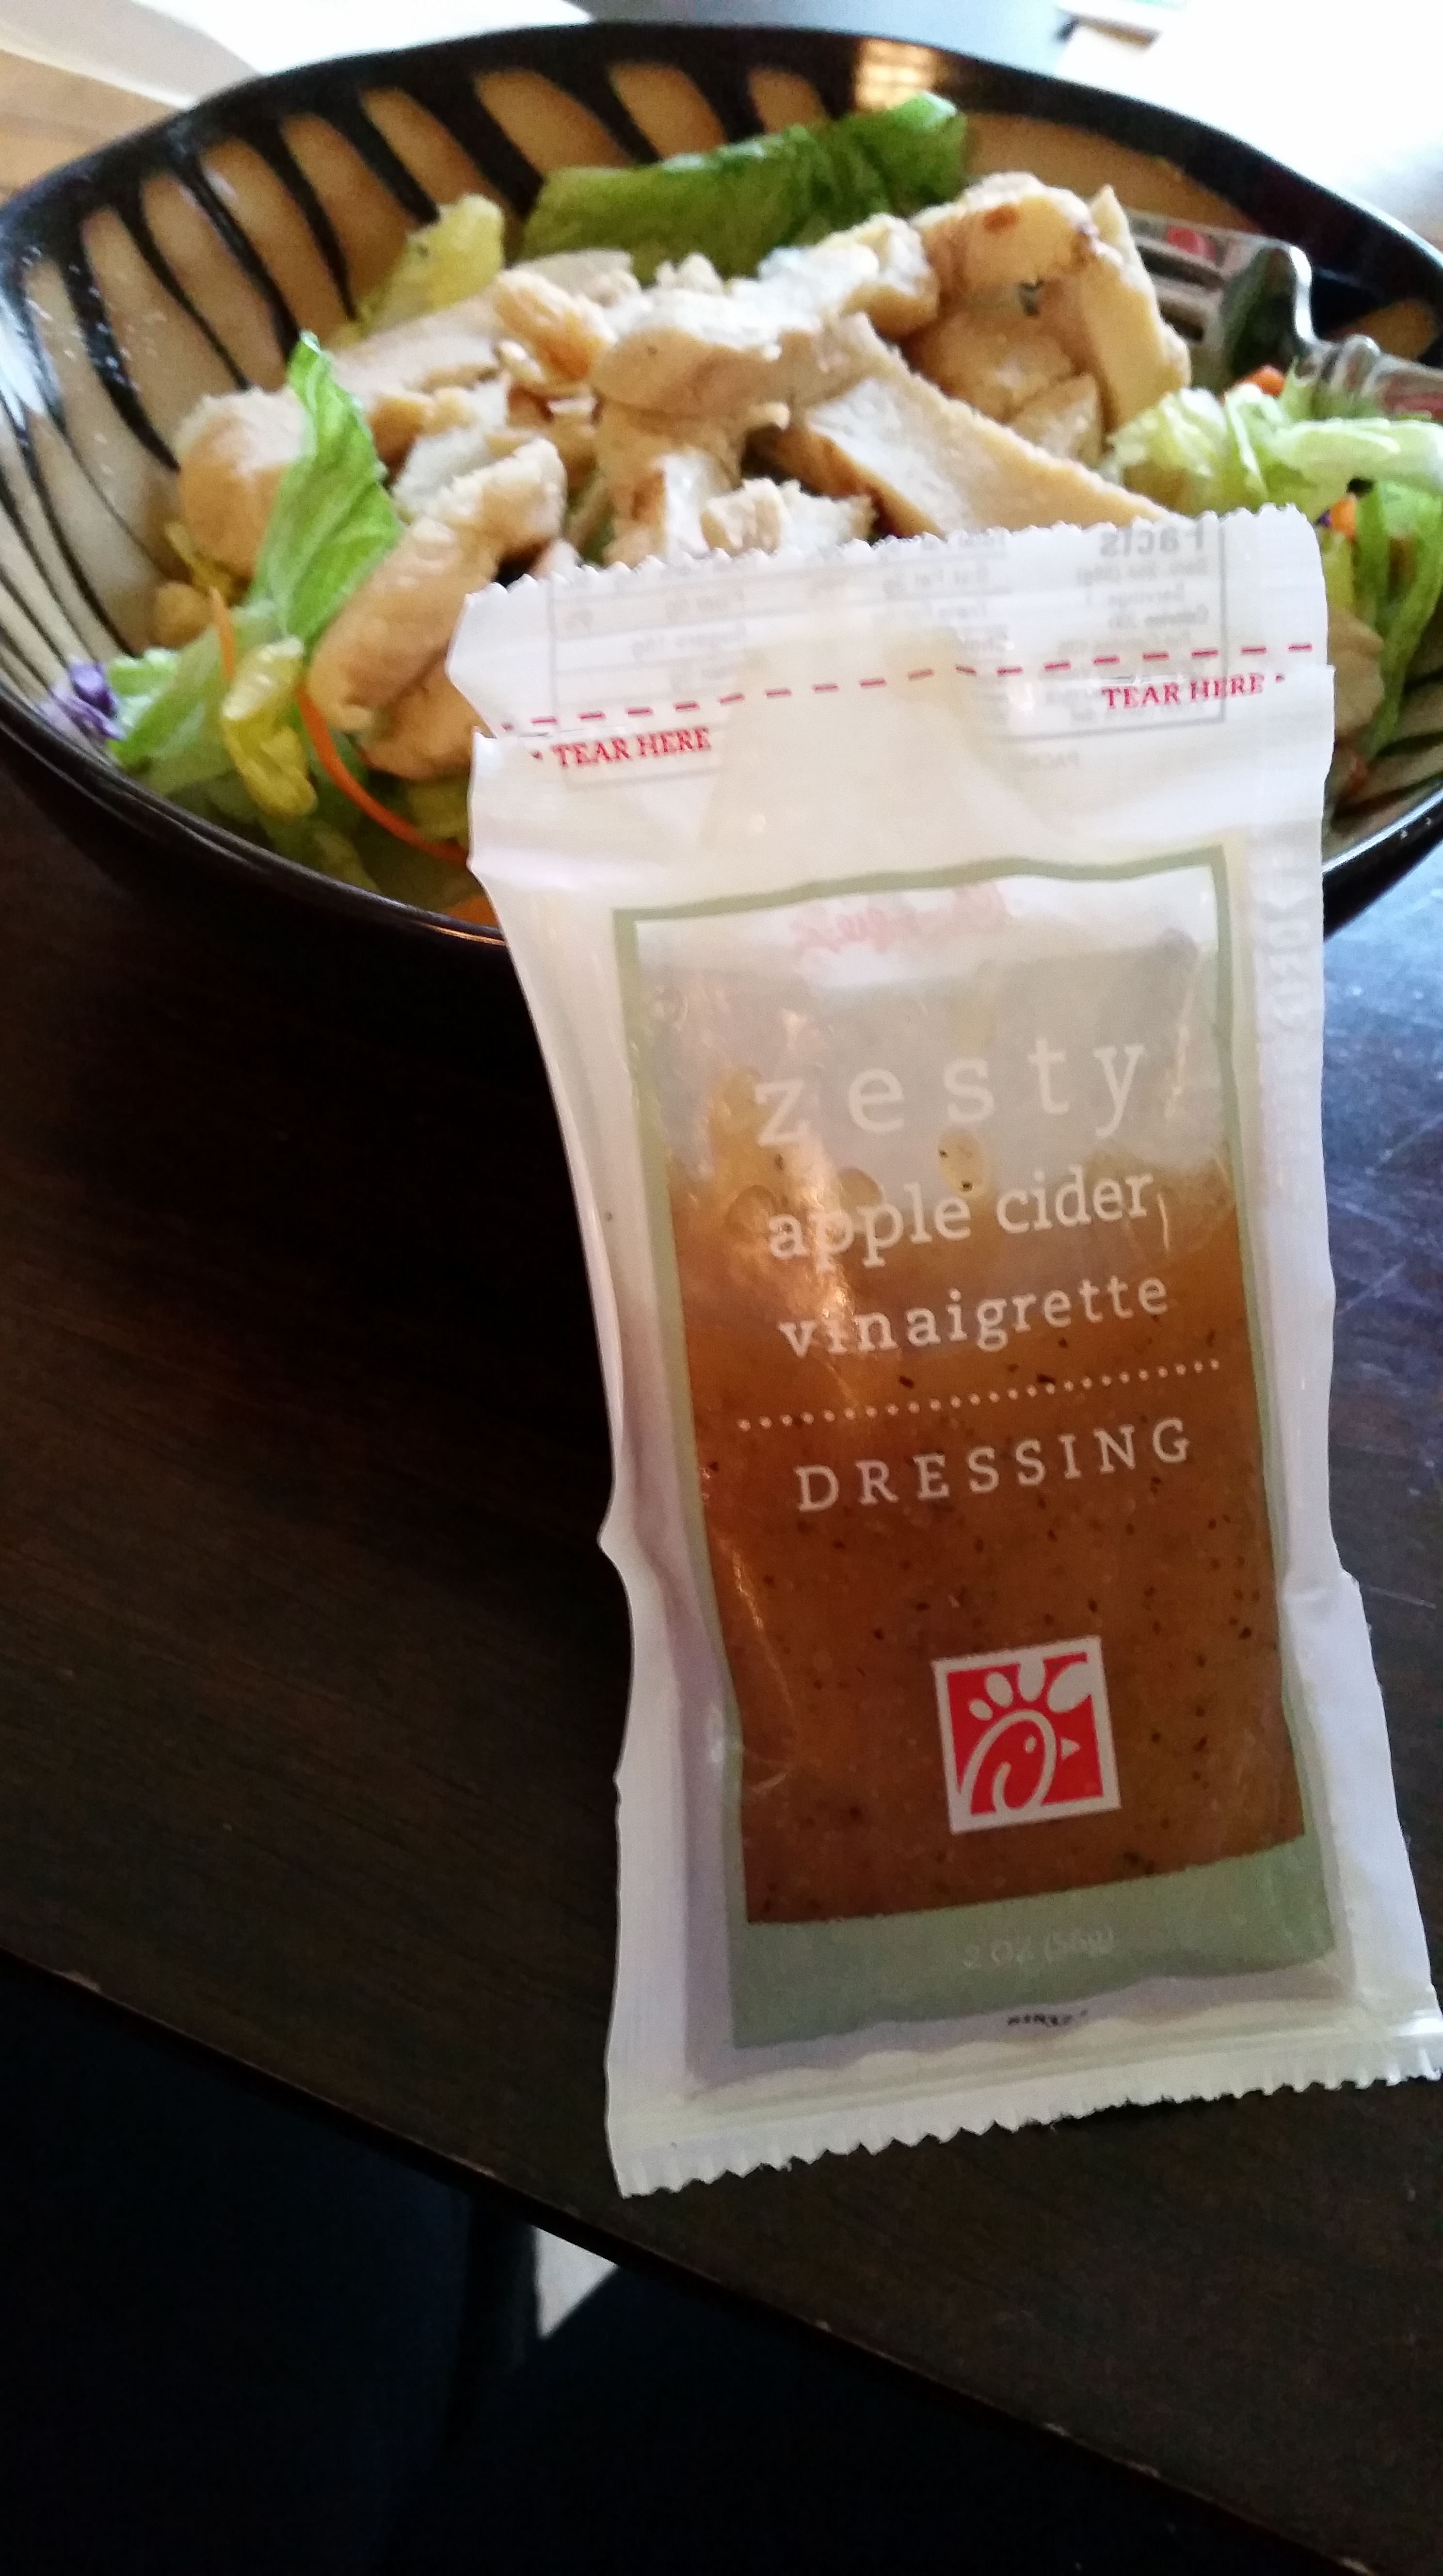 Choosing Healthy At Chick-Fil-A: The Good, Bad, & Ugly!